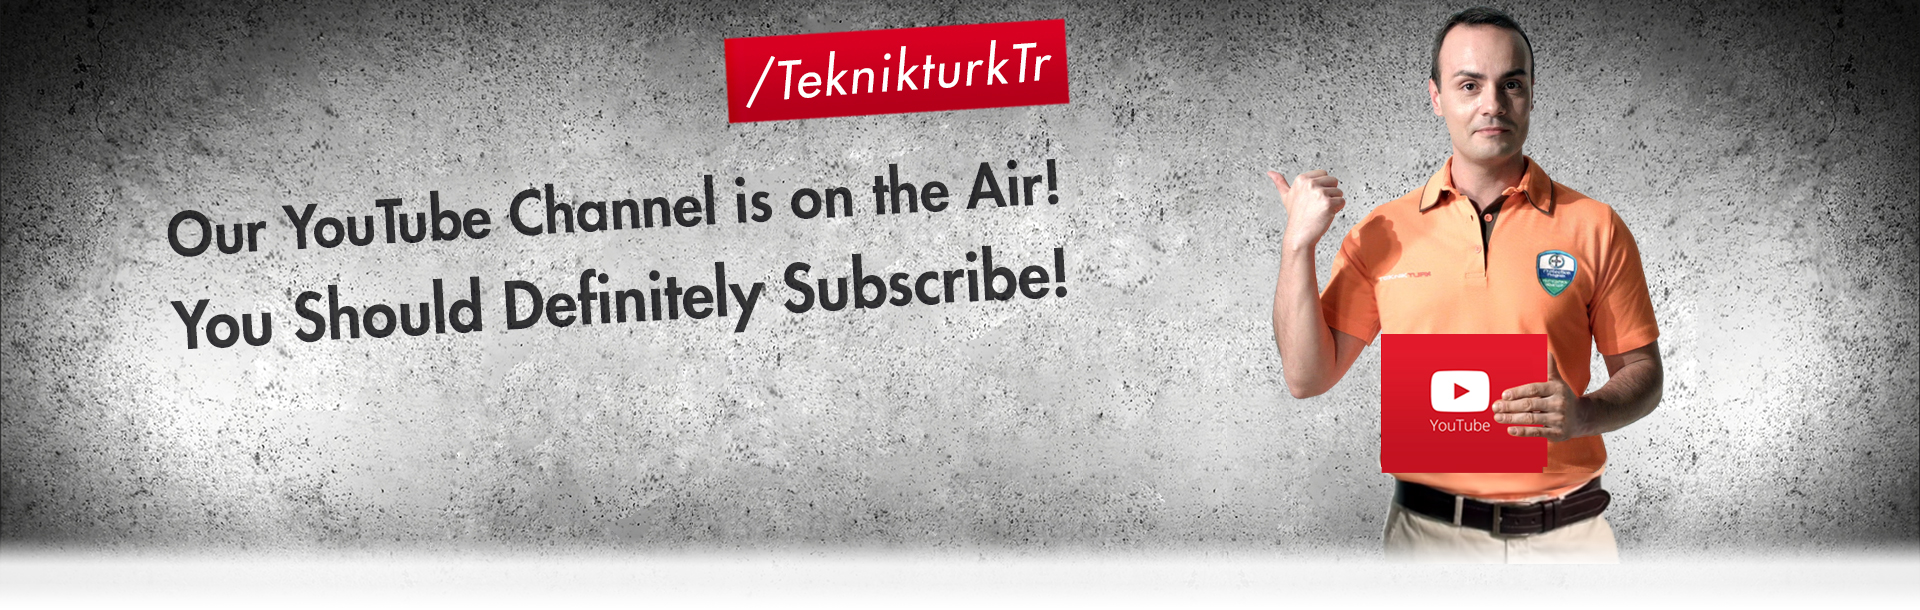 Our YouTube Channel is the on Air! You should definitely subscribe!